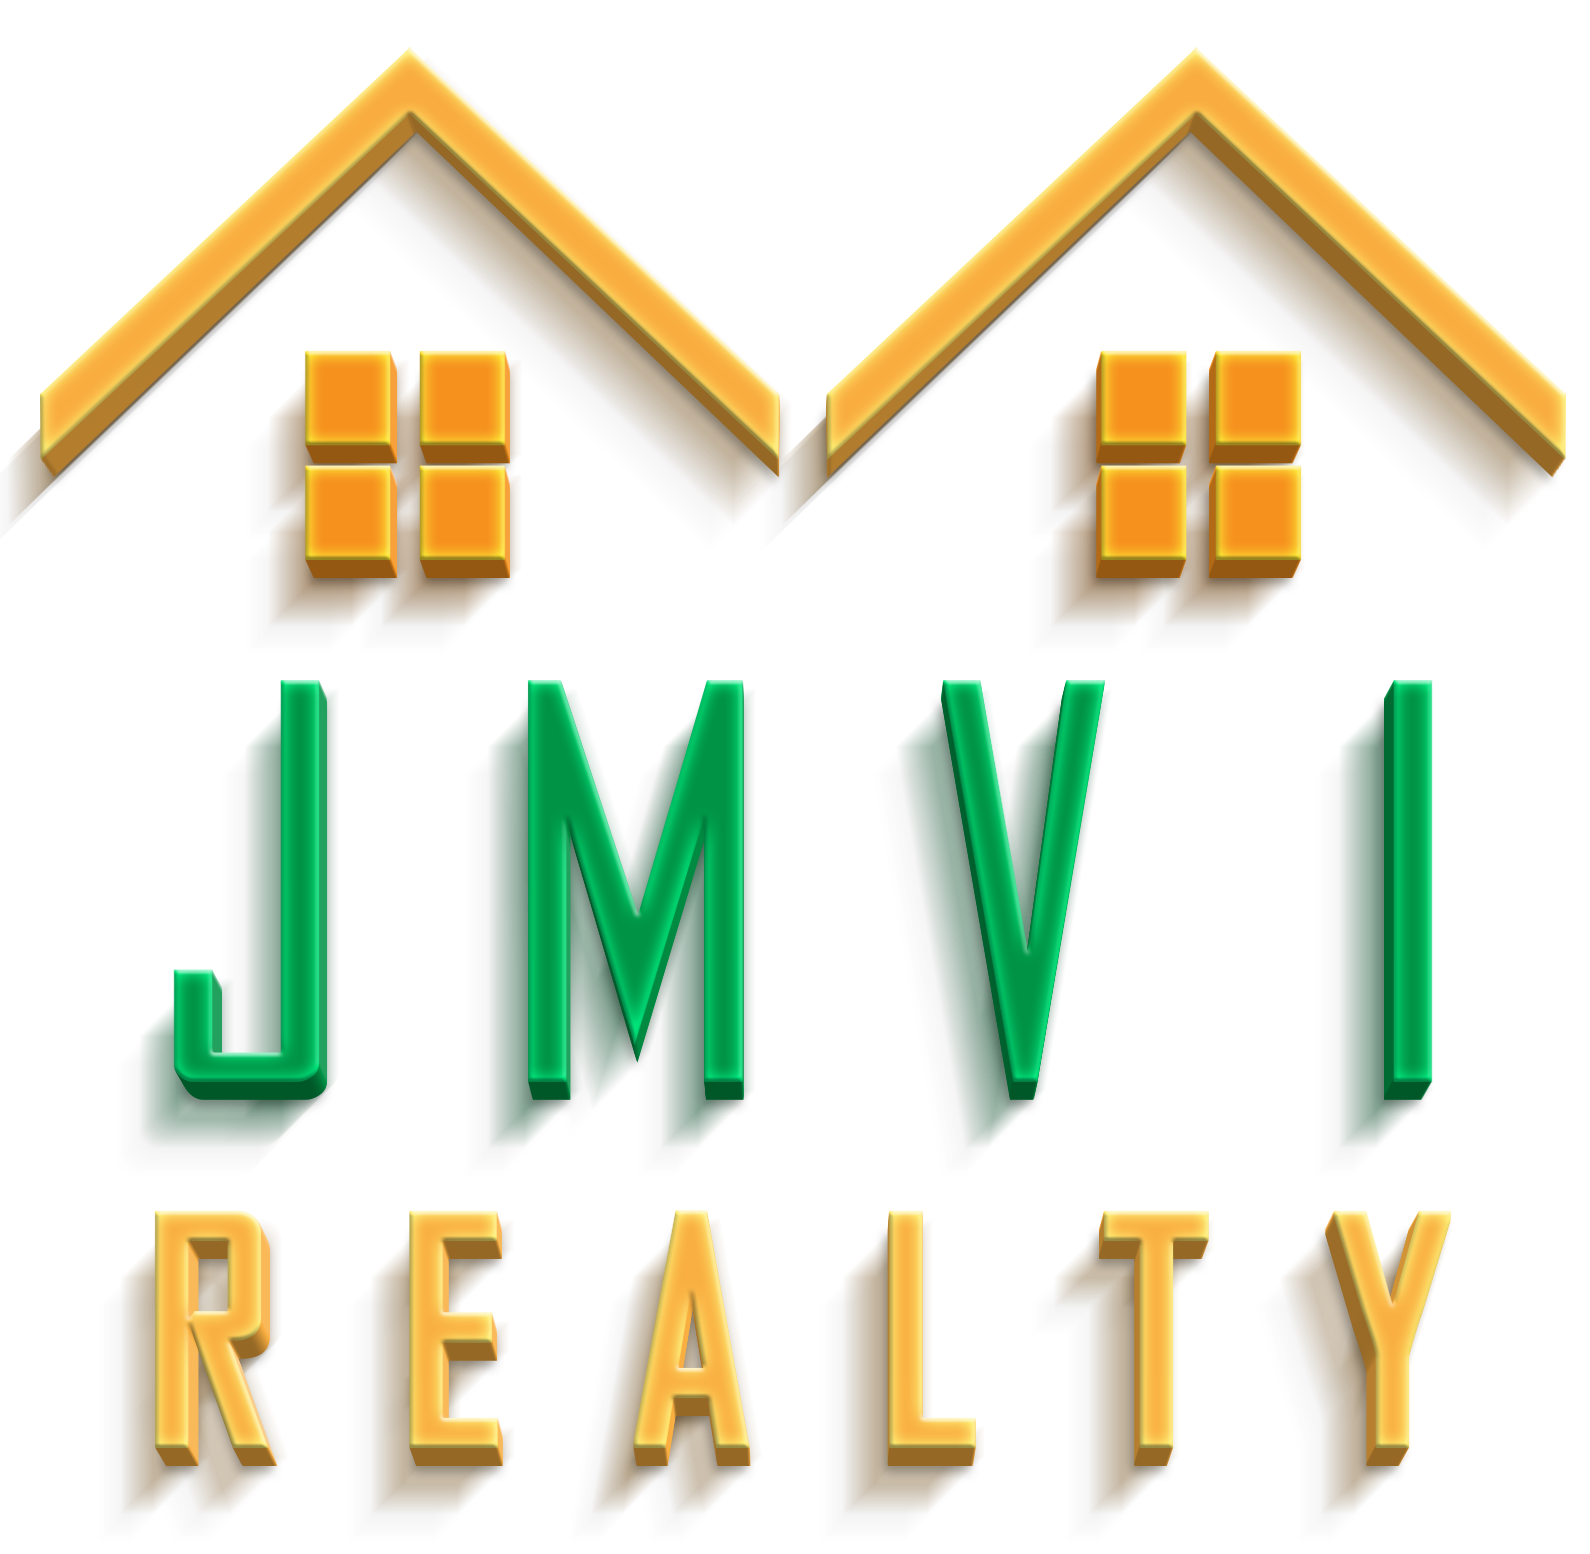 Introducing JMVI Realty – Carribean's game-changing property app